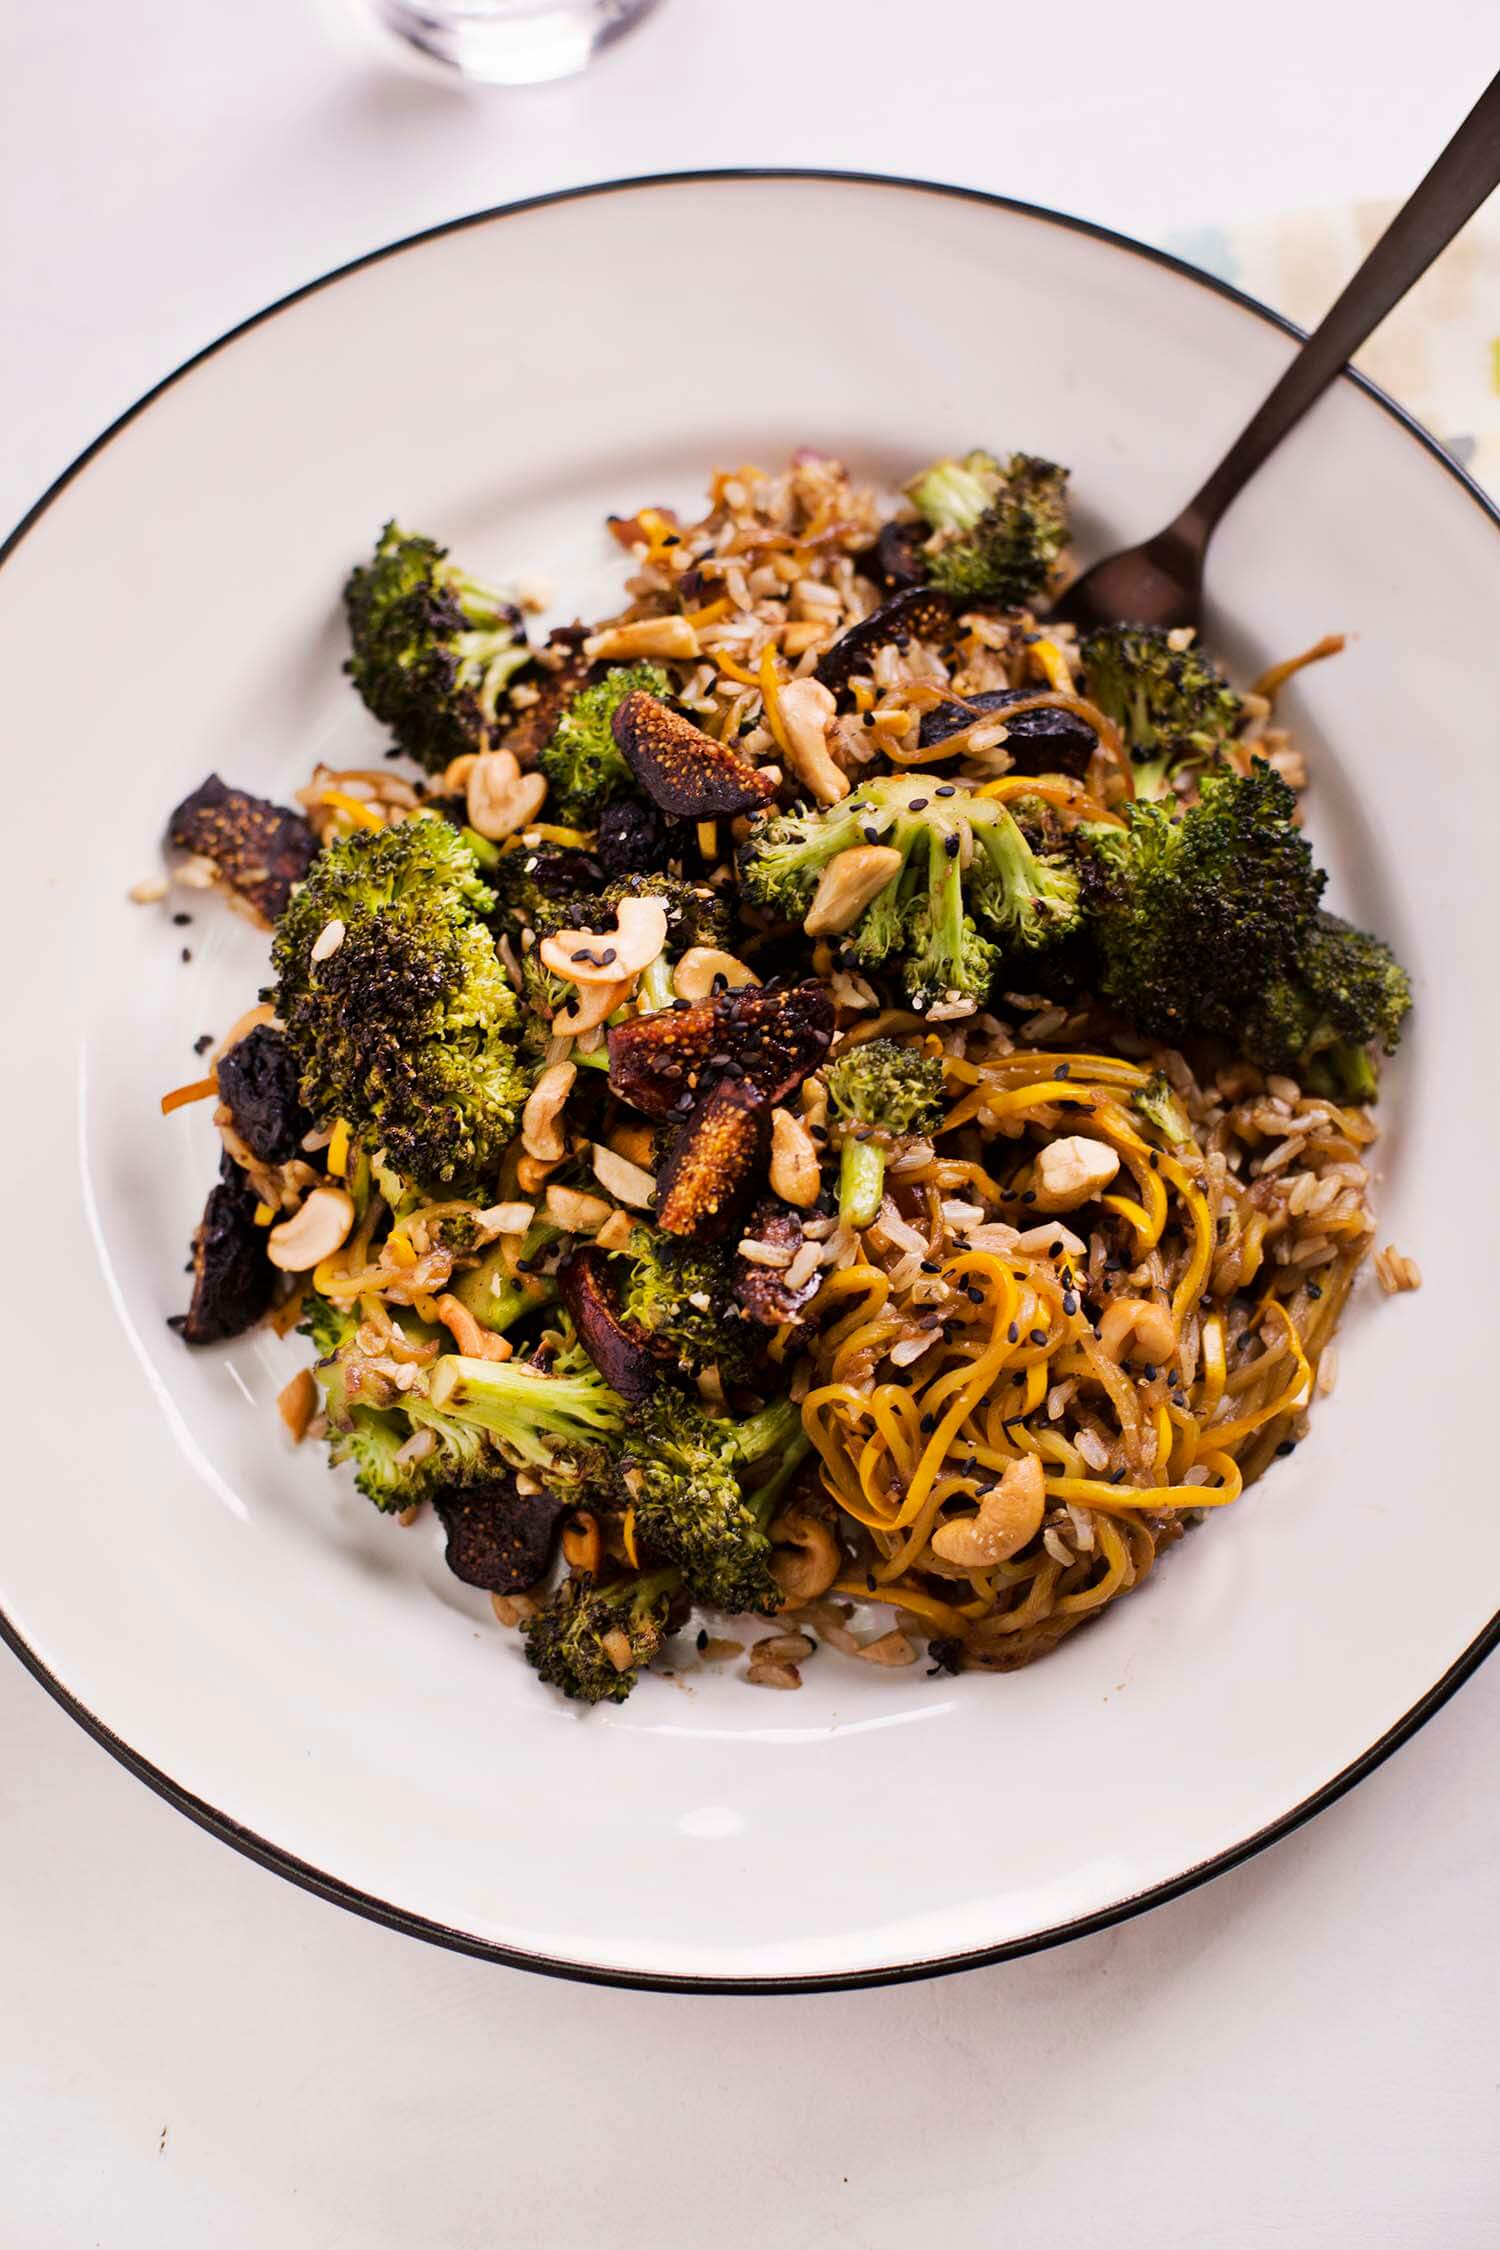 Balsamic and Fig Vegetable Stir Fry (via abeautifulmess.com)